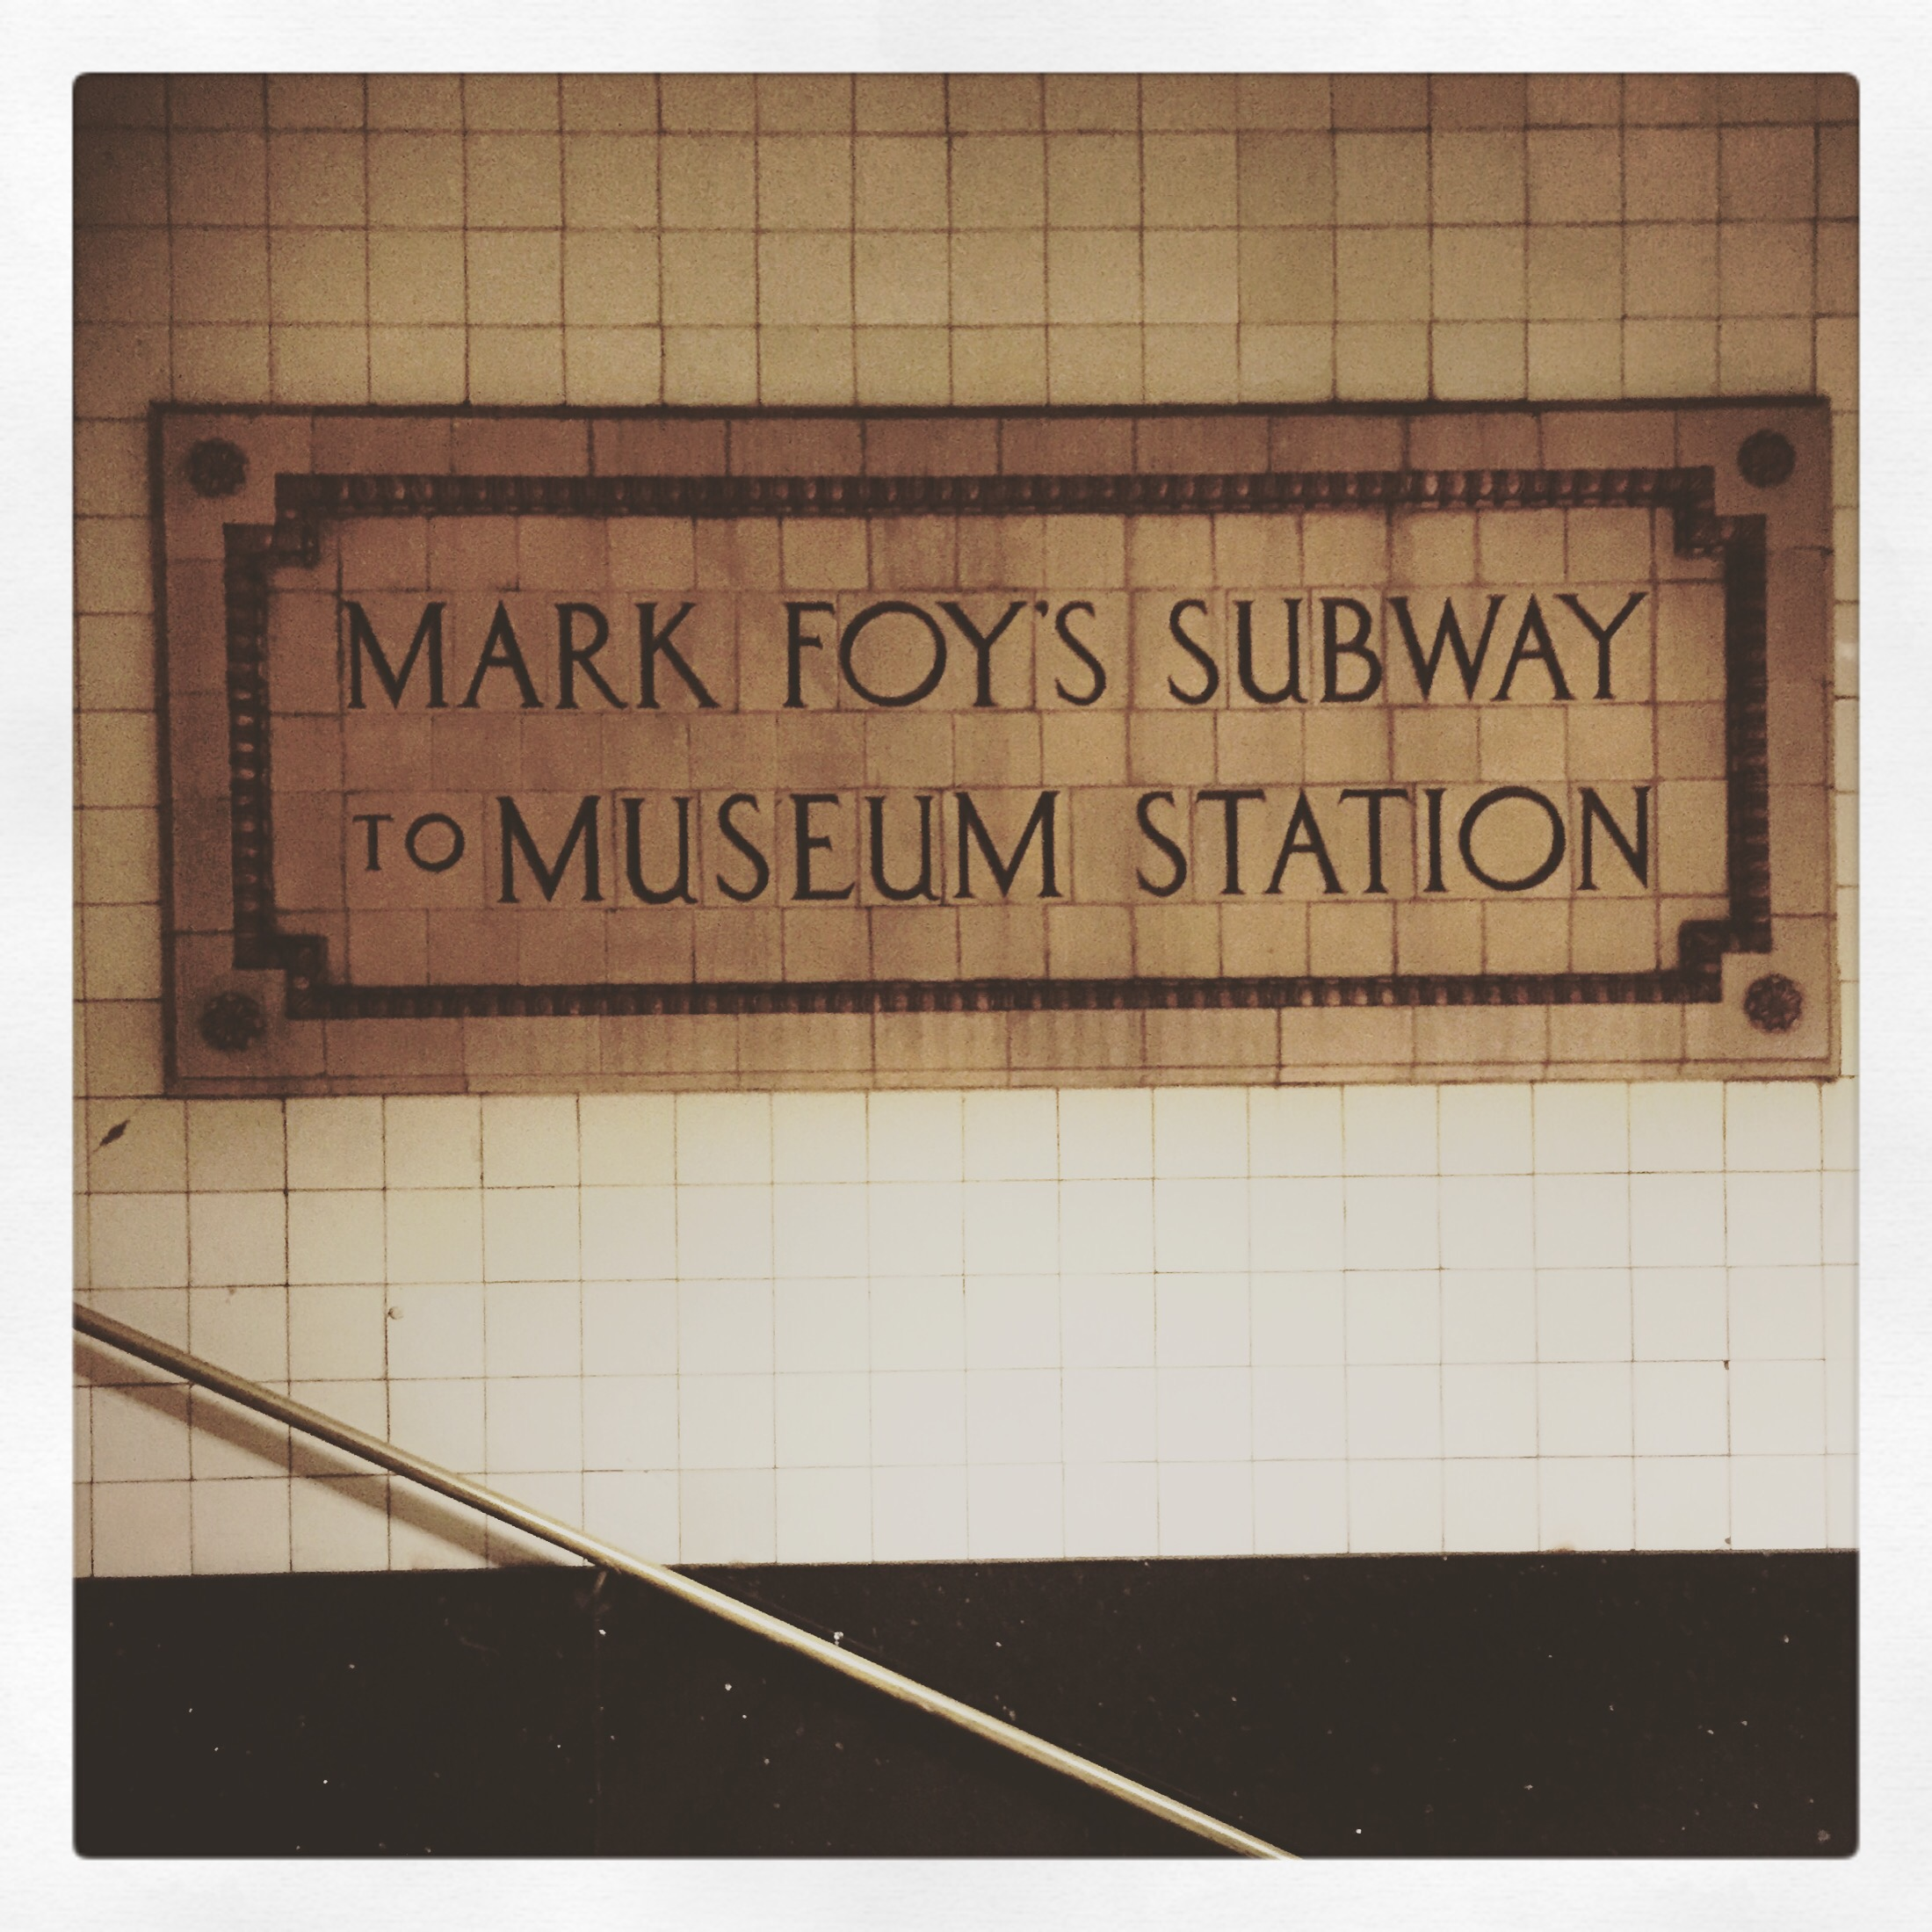 Day 1627. Mark foys subway…